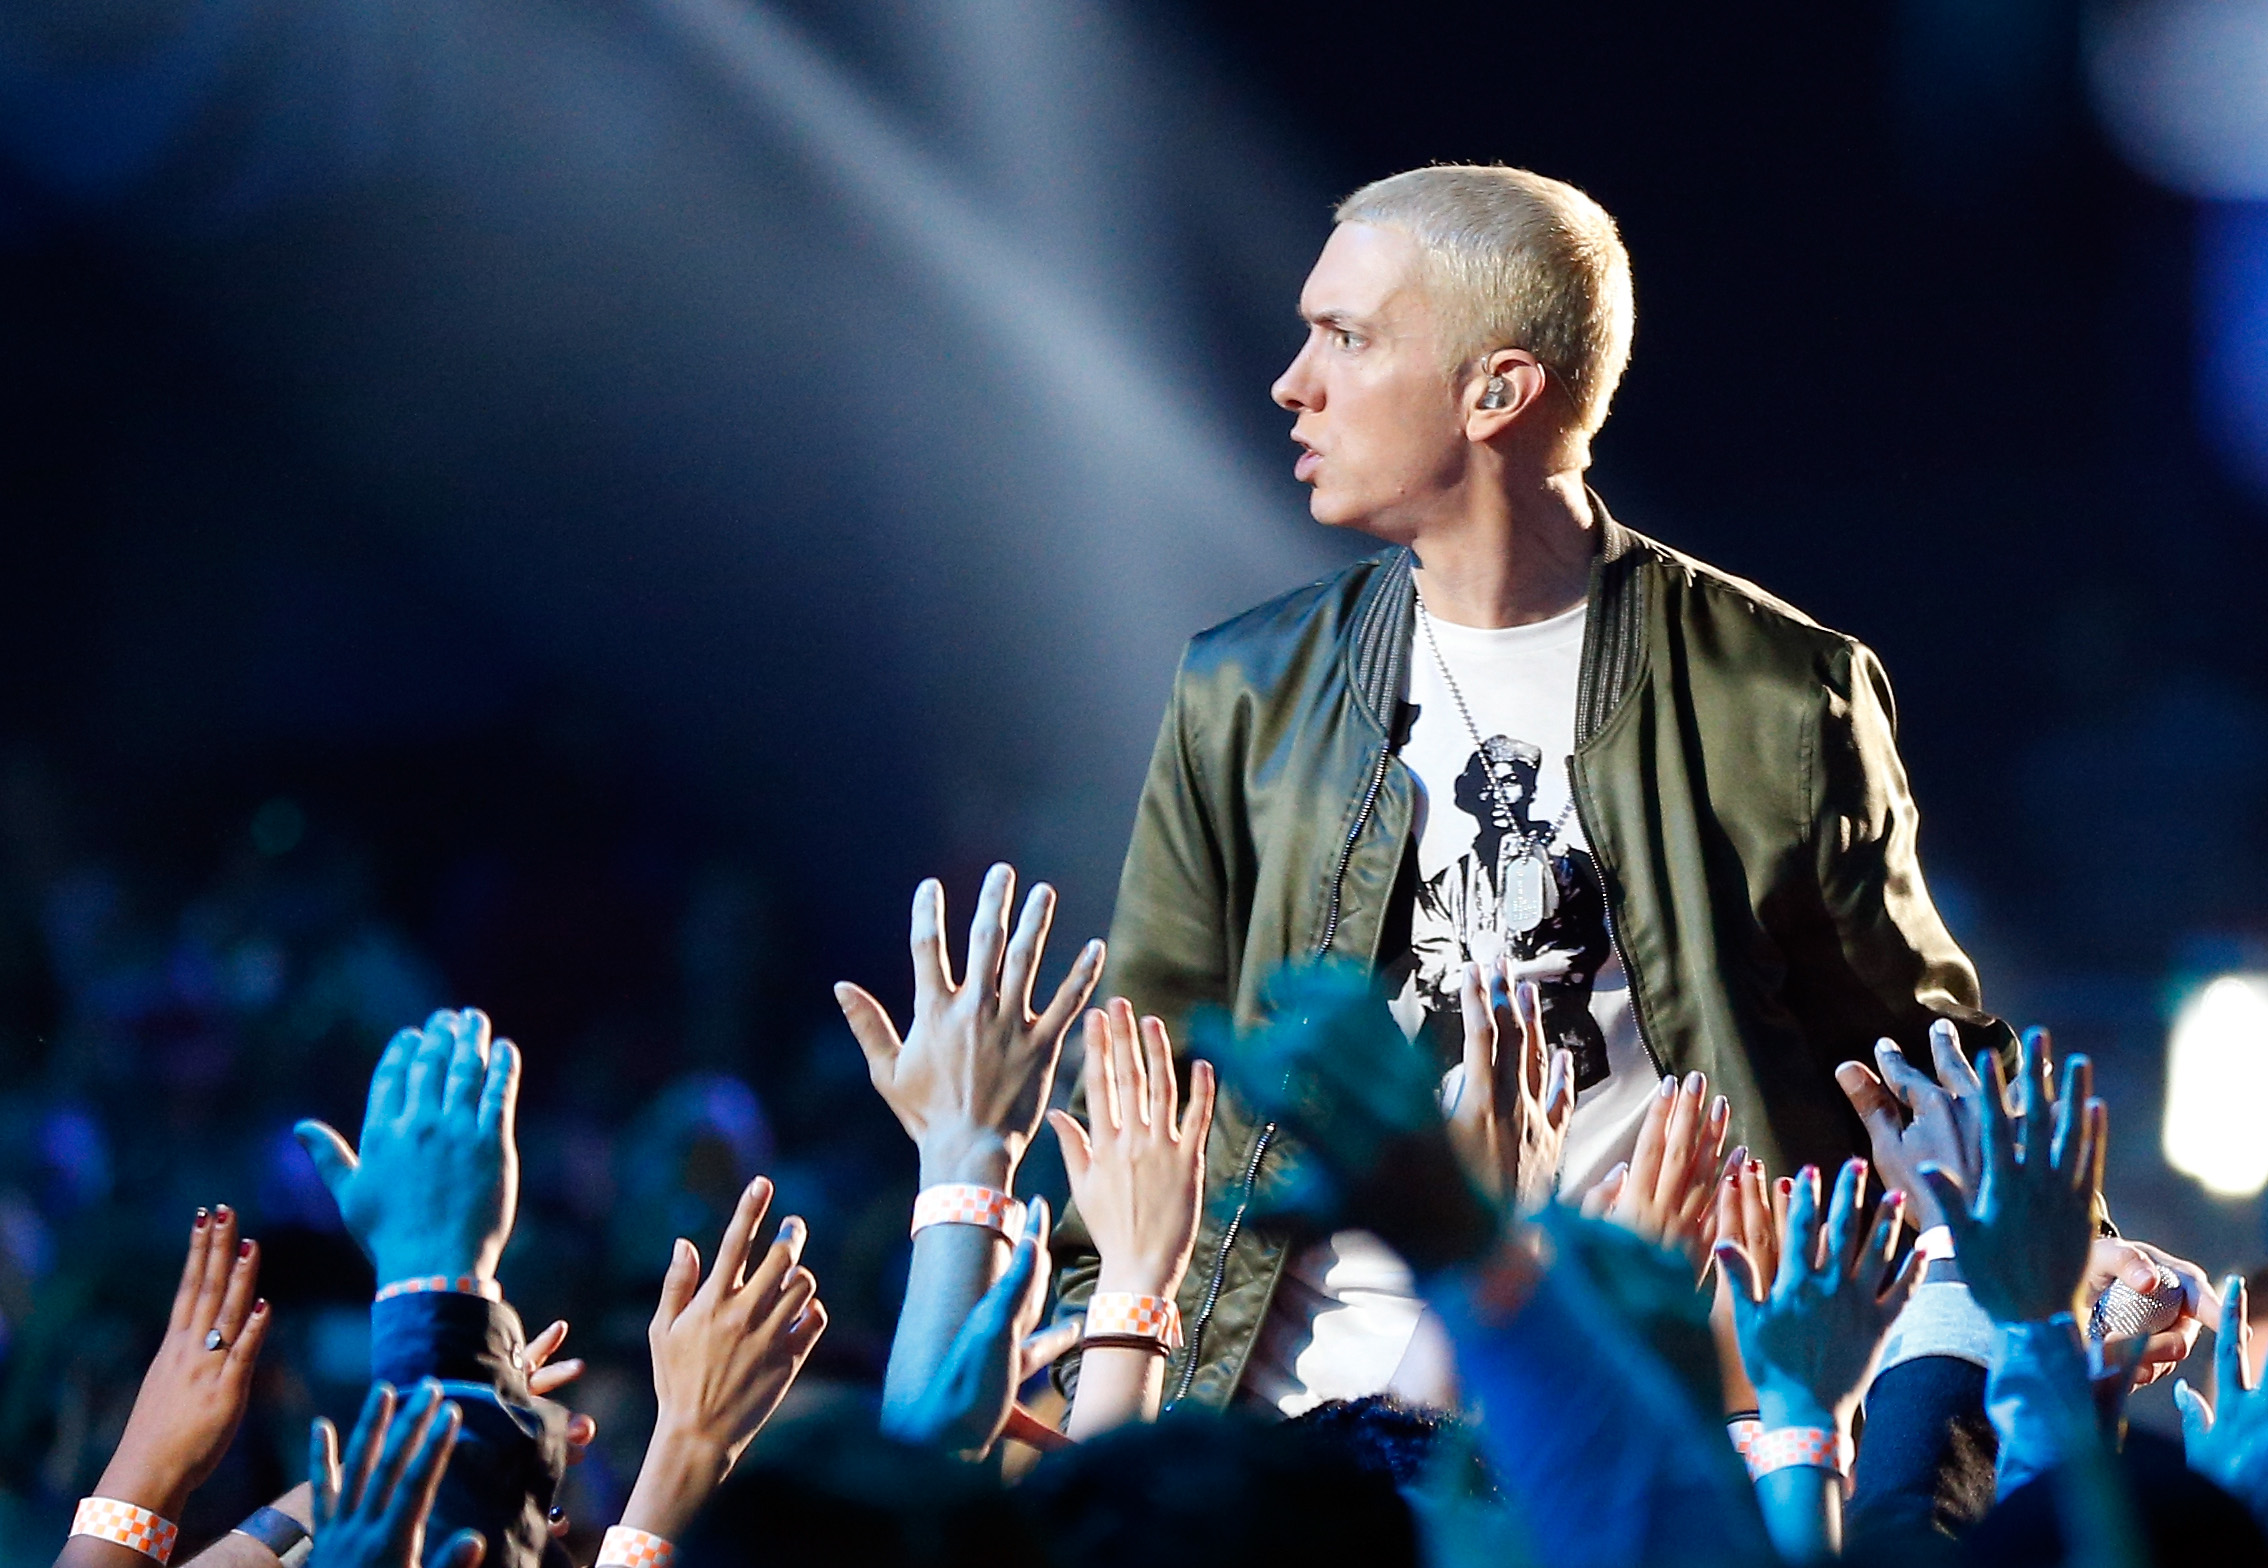 Eminem Reveals New Album Name In Absolutely Genius Way GettyImages 484695937